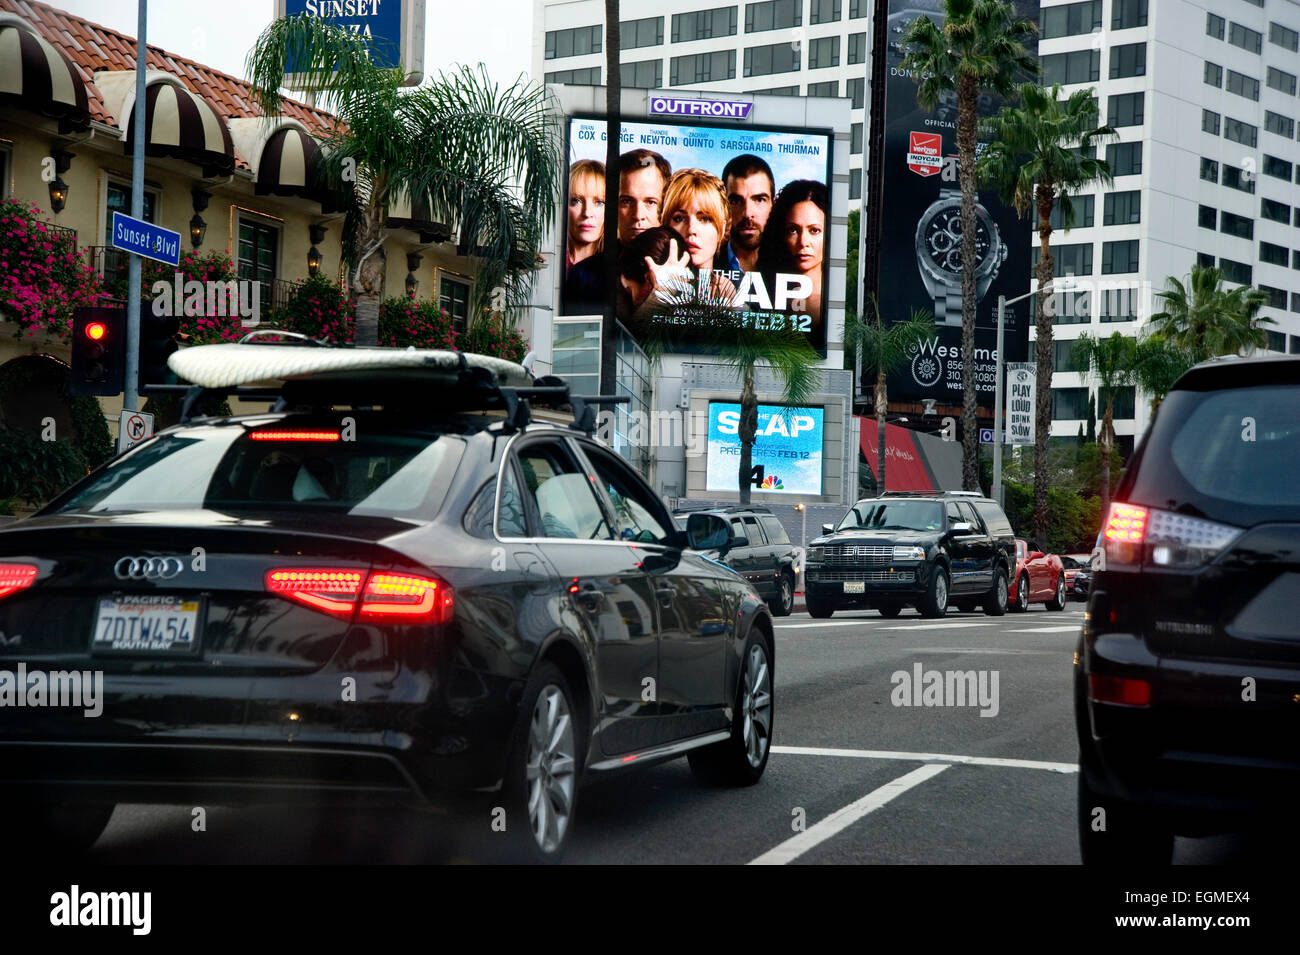 Digital billboards on the Sunset Strip - Stock Image